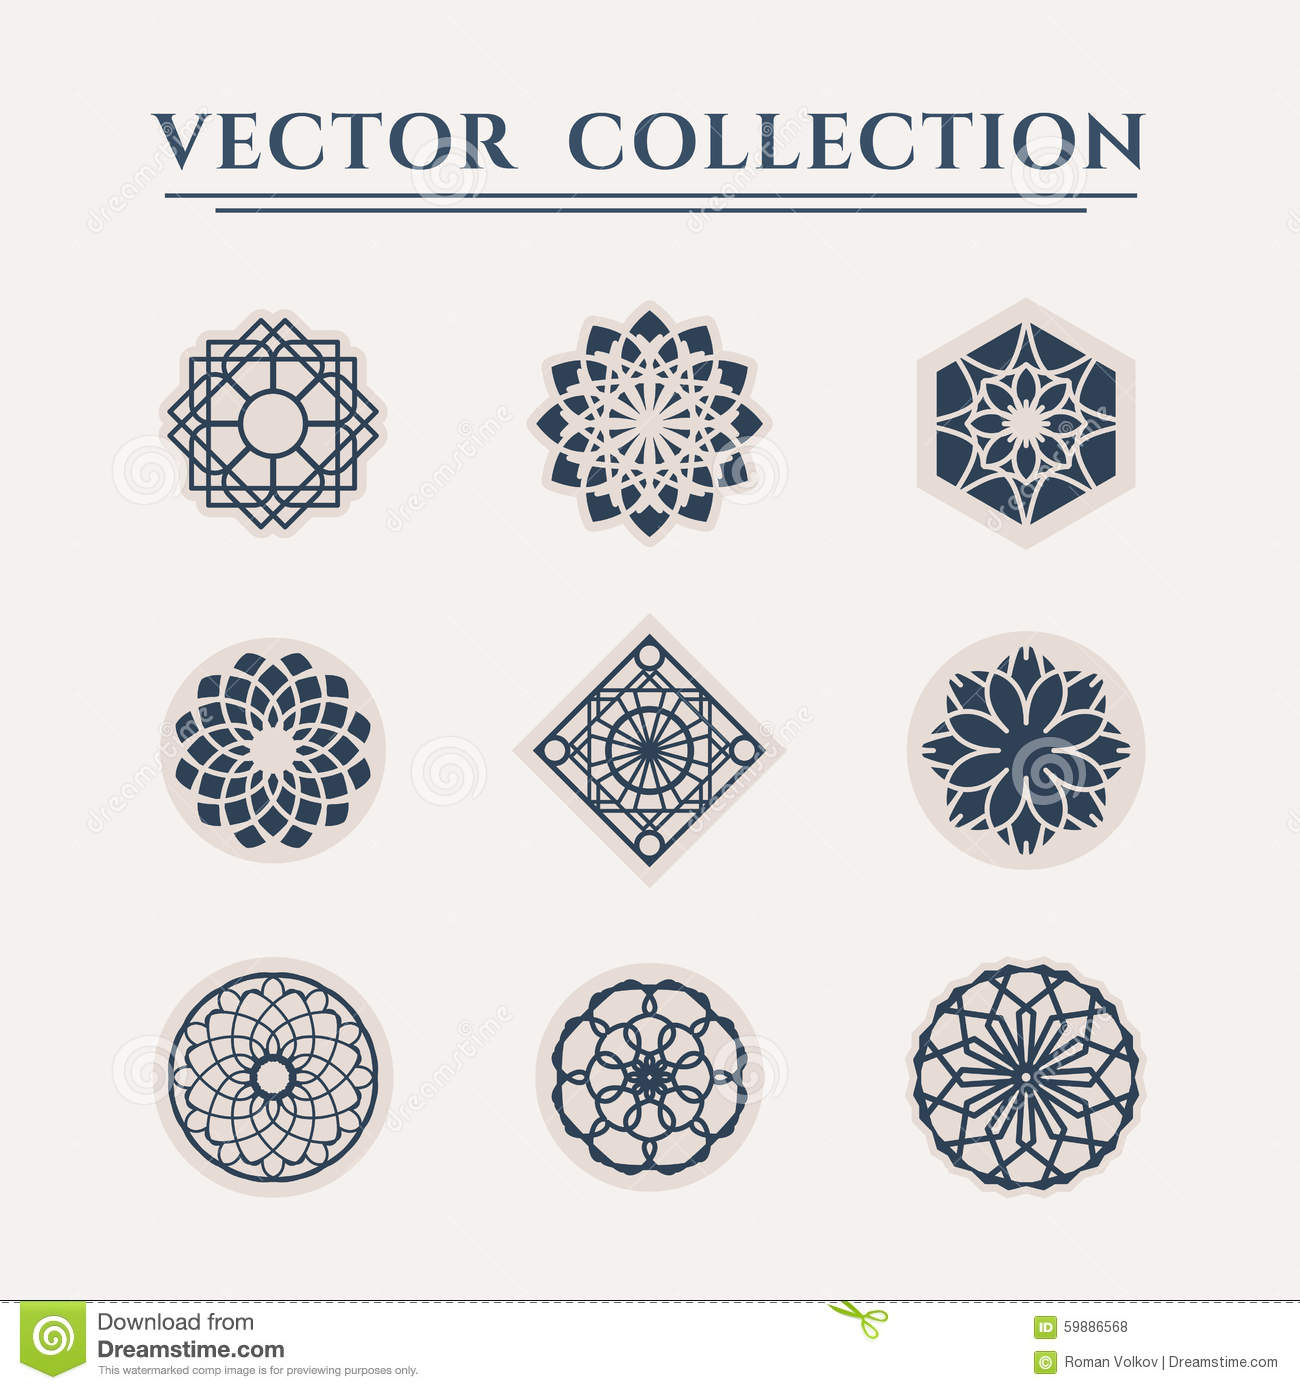 Ornamental logo templates set. Vector arabic geometric symbols.